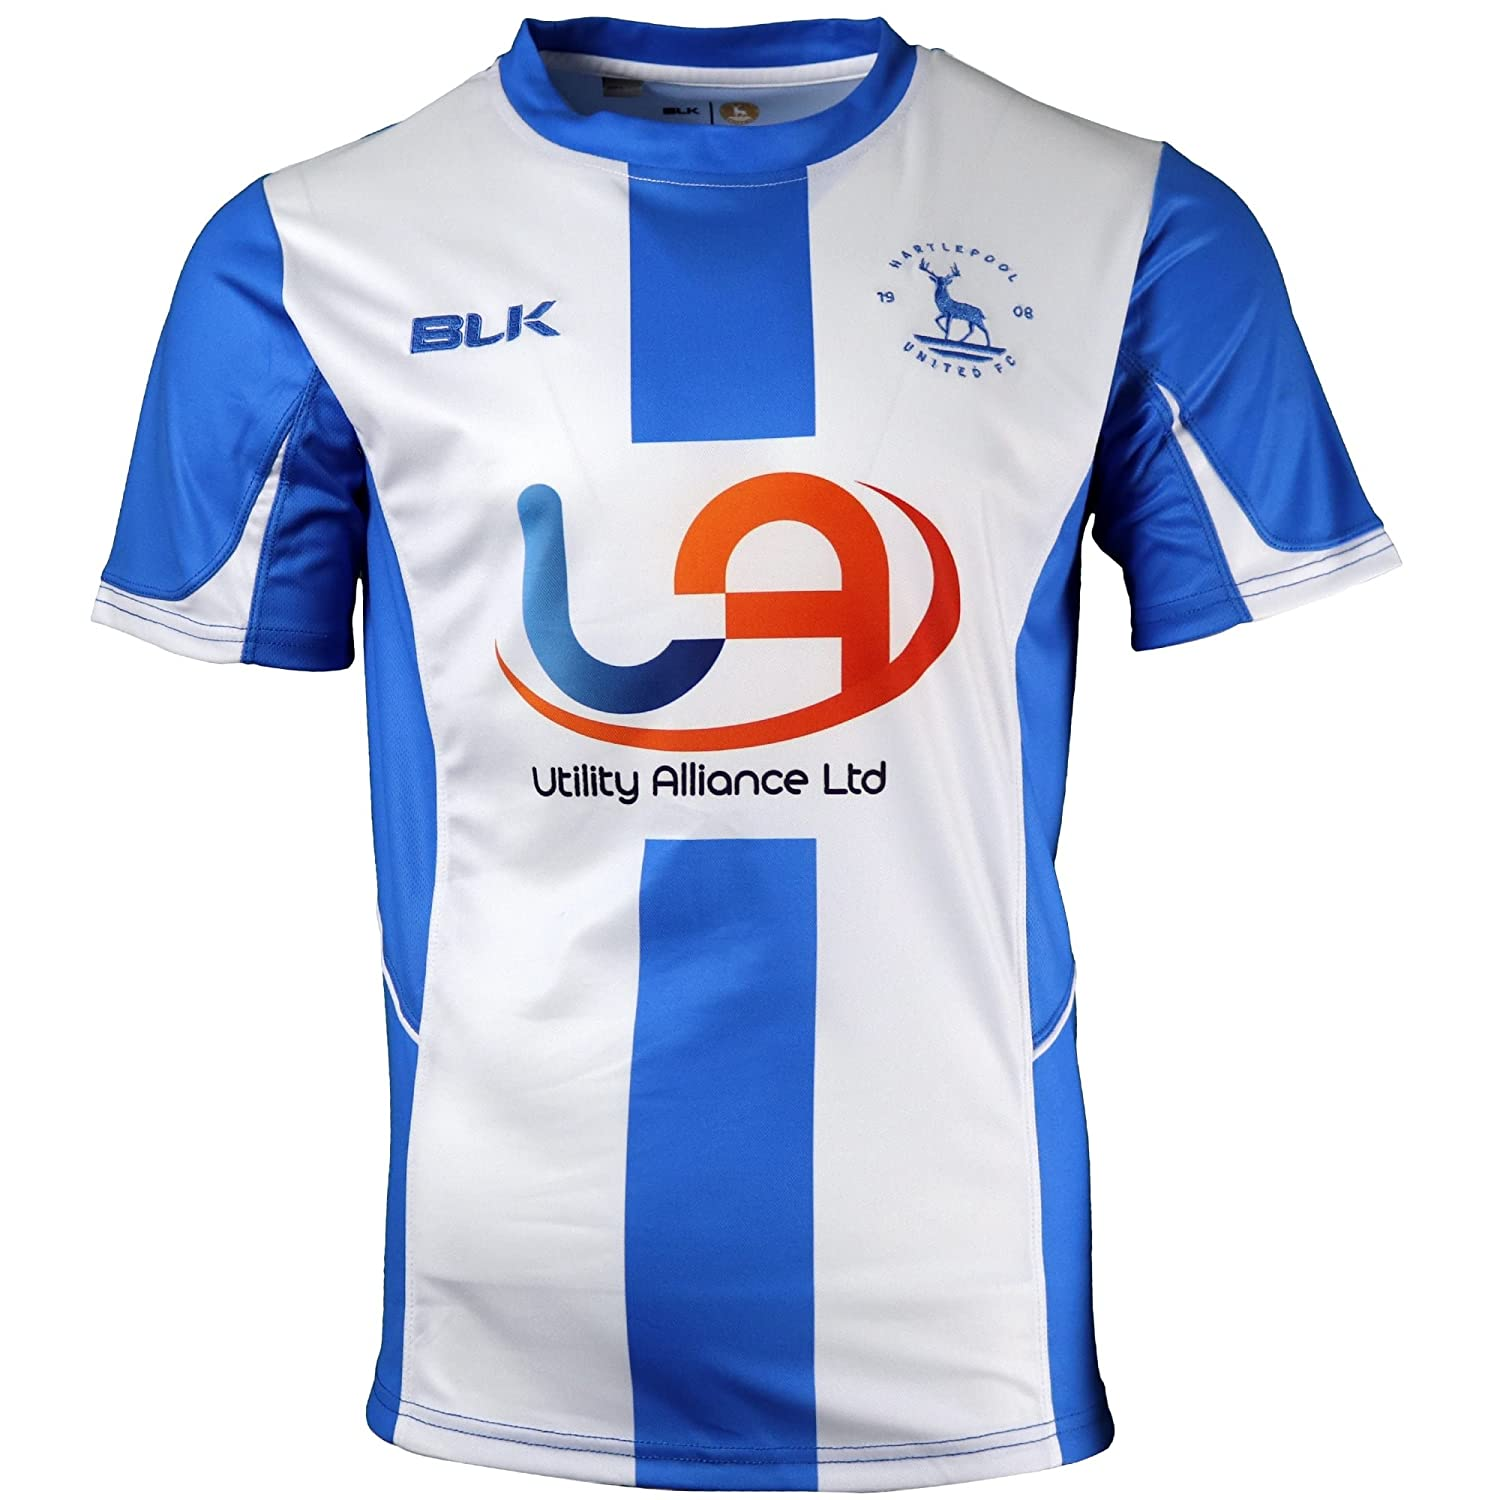 Hartlepool United FC Official Men's Home Shirt 2017-2018 BLK